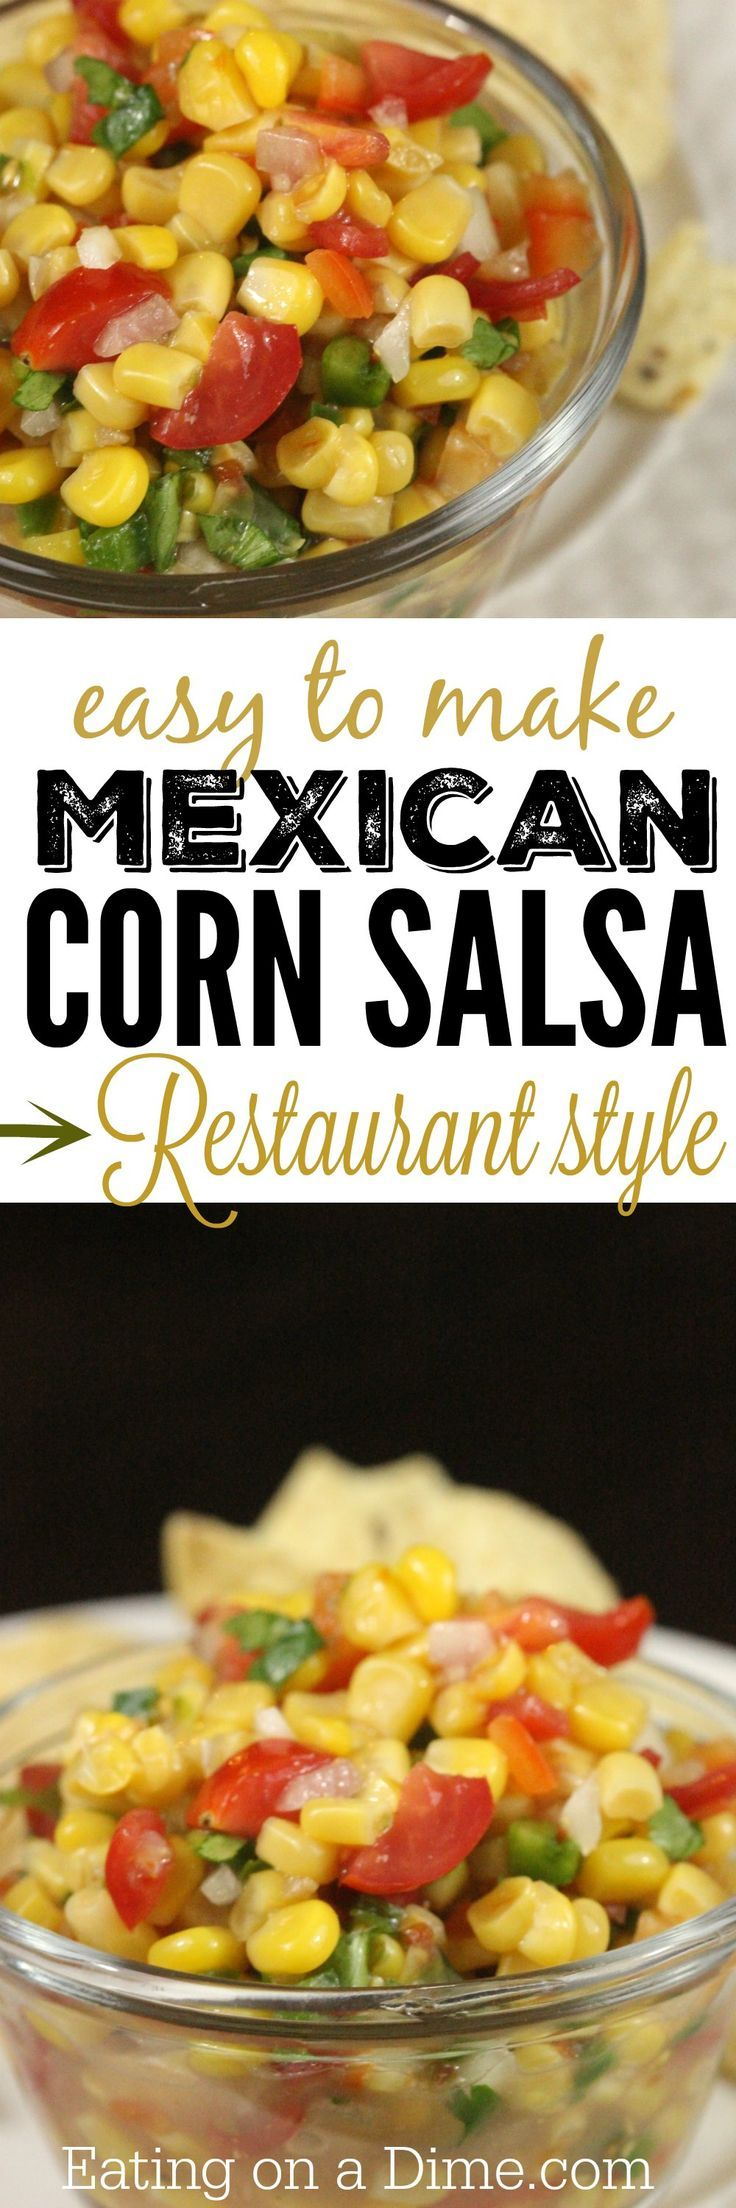 This is the BEST Mexican Corn Salsa Recipe, and it is so easy to make!